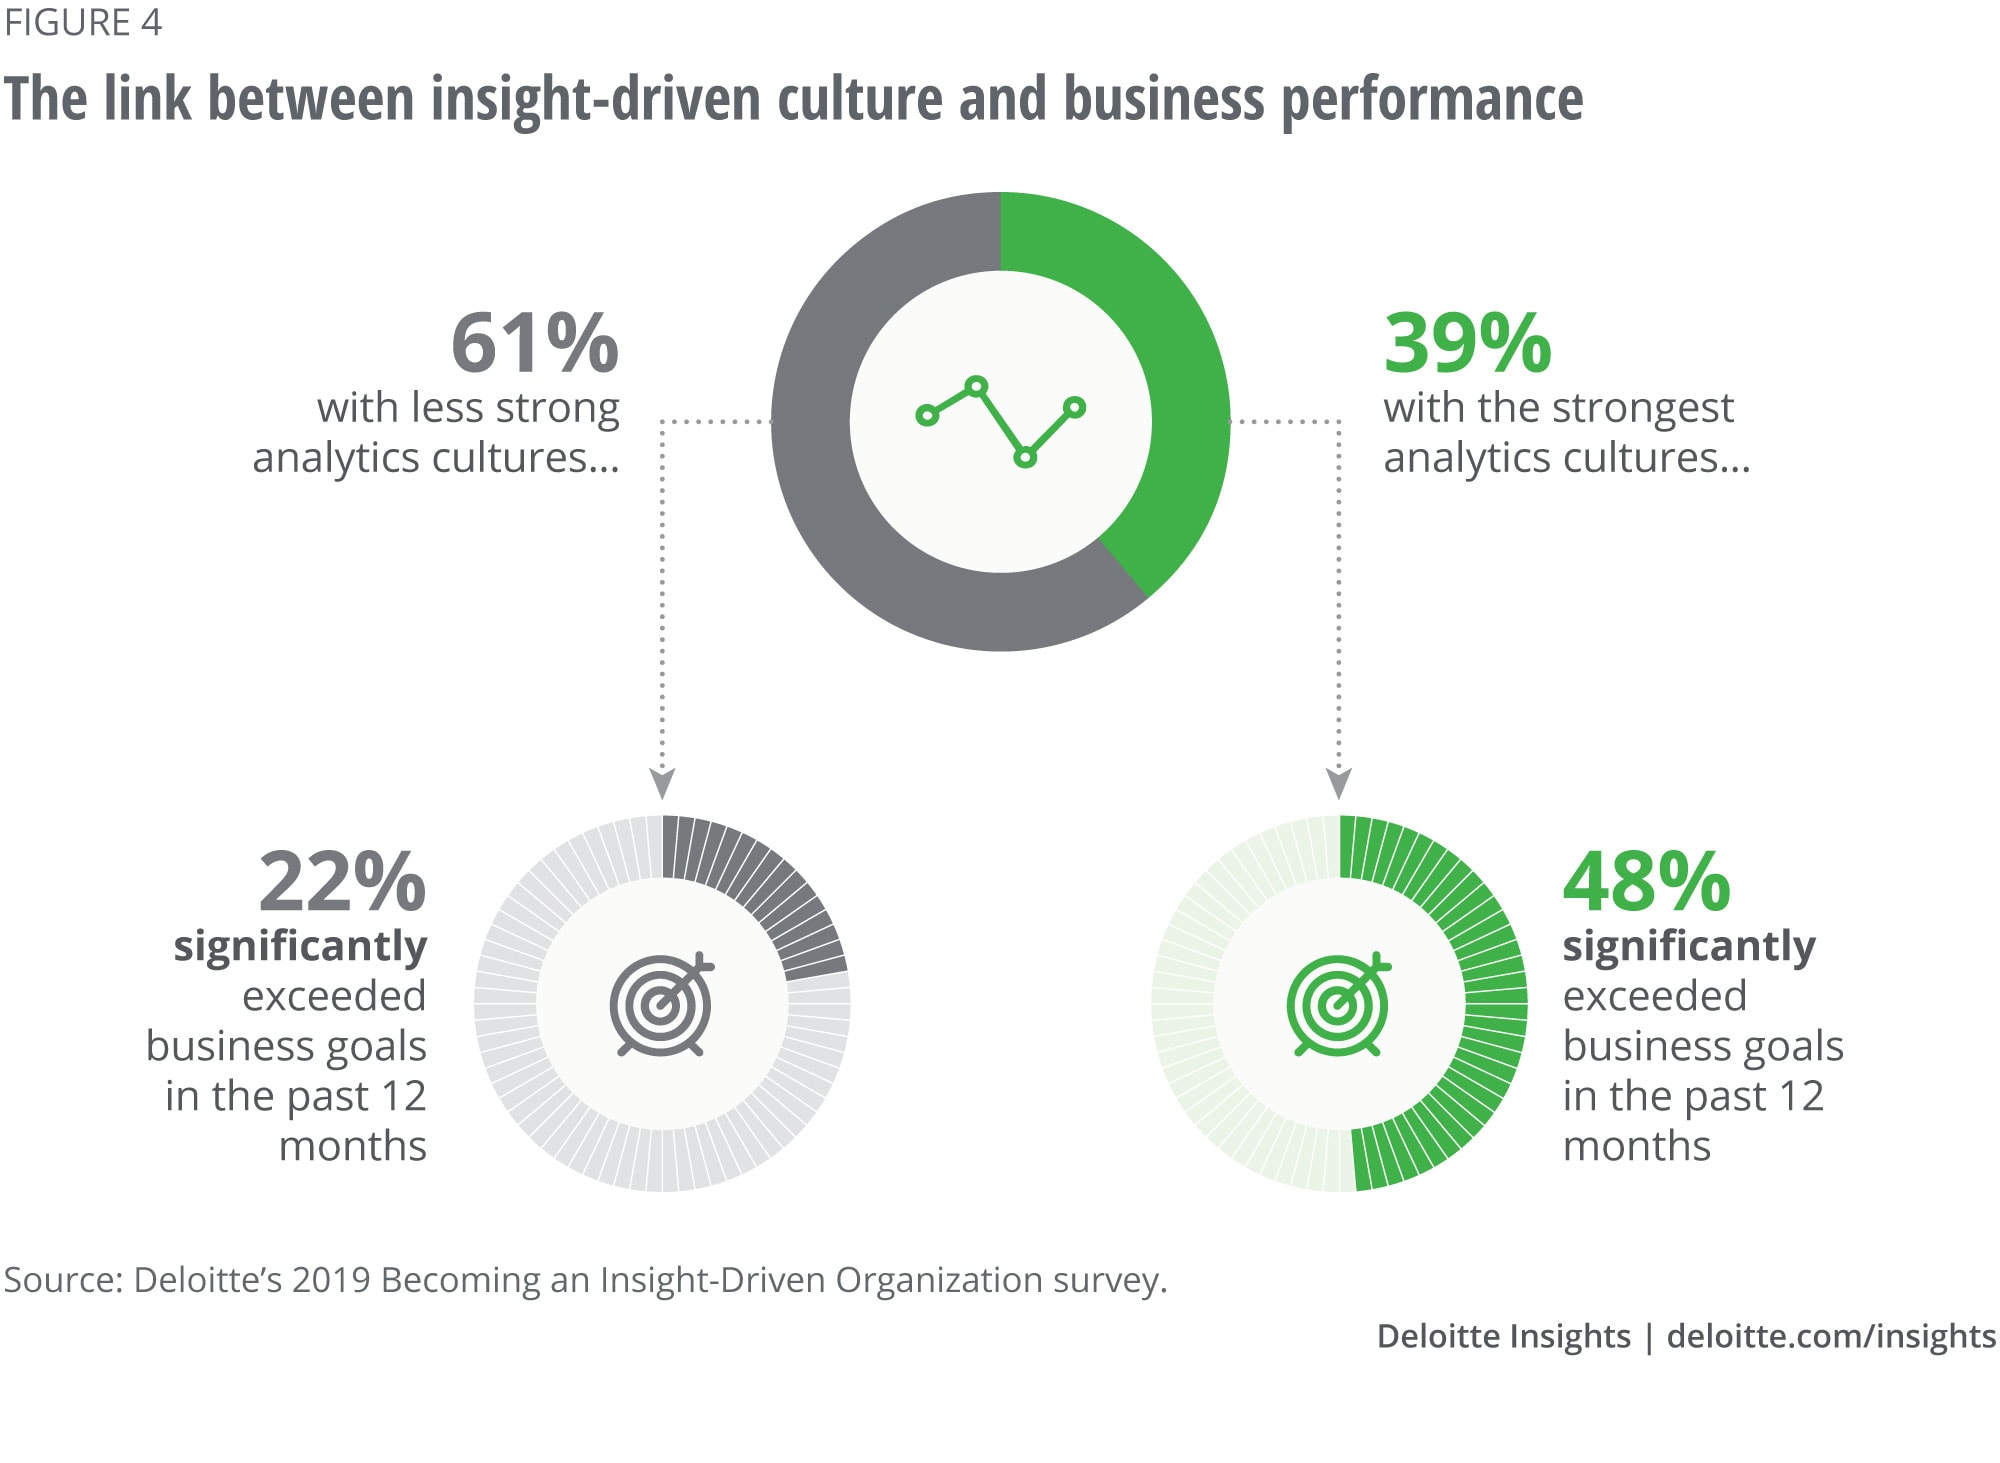 The link between insight-driven culture and business performance